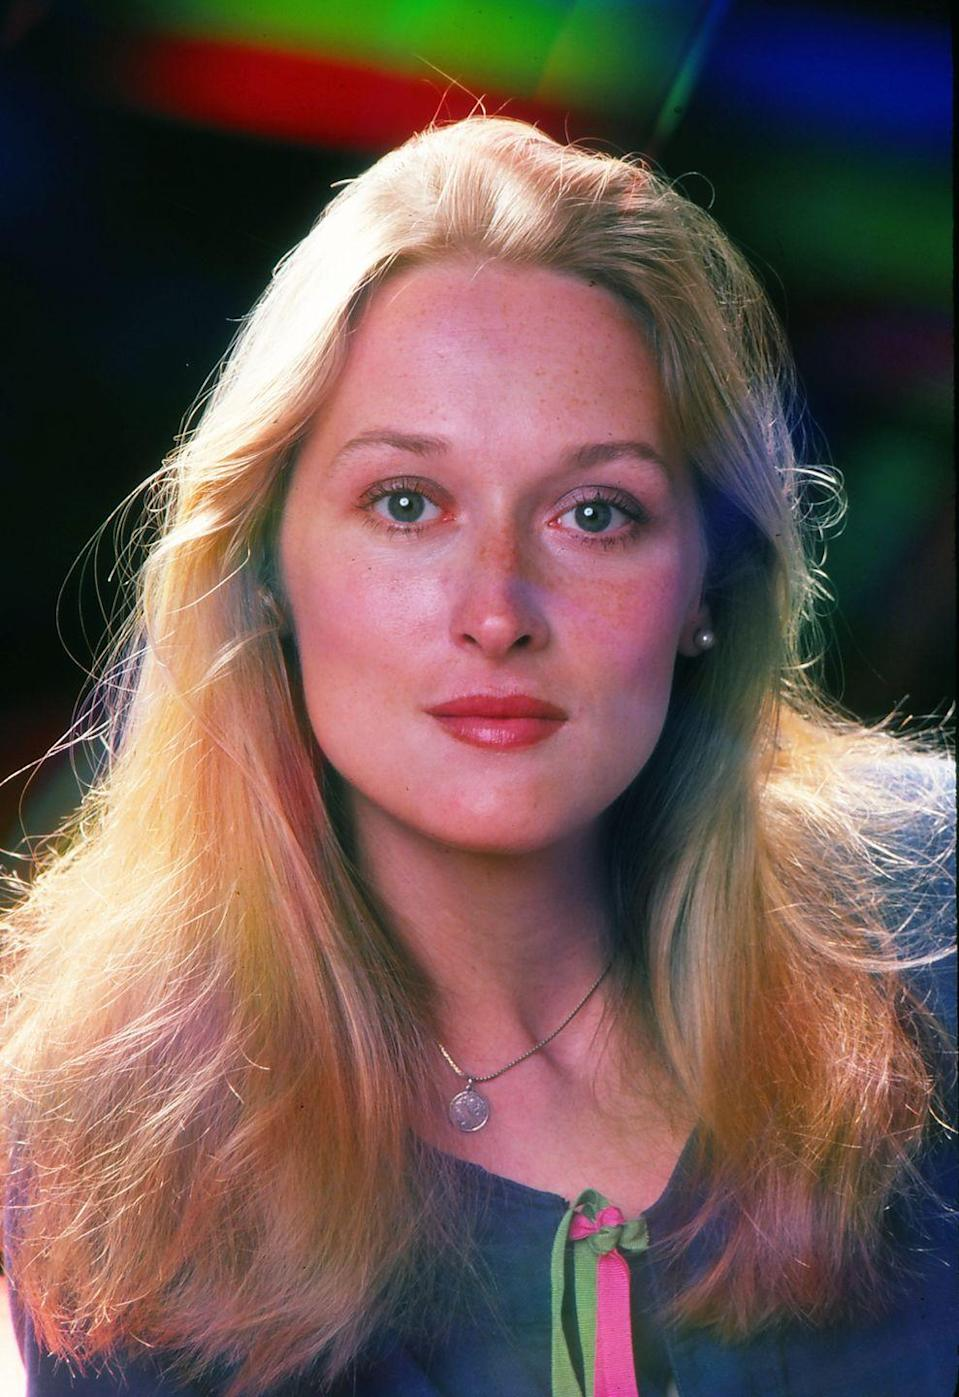 <p>Meryl now has an impressive 21 Oscar nominations, but back in 1976 she was just getting started. It was her 1979 role in <em>Kramer vs Kramer</em> that really put her on everyone's radar. Meryl continued to wow us as she swapped from TV to the silver screen effortlessly. Four decades later, people can rank their top five Meryl films at the drop of a hat. </p>